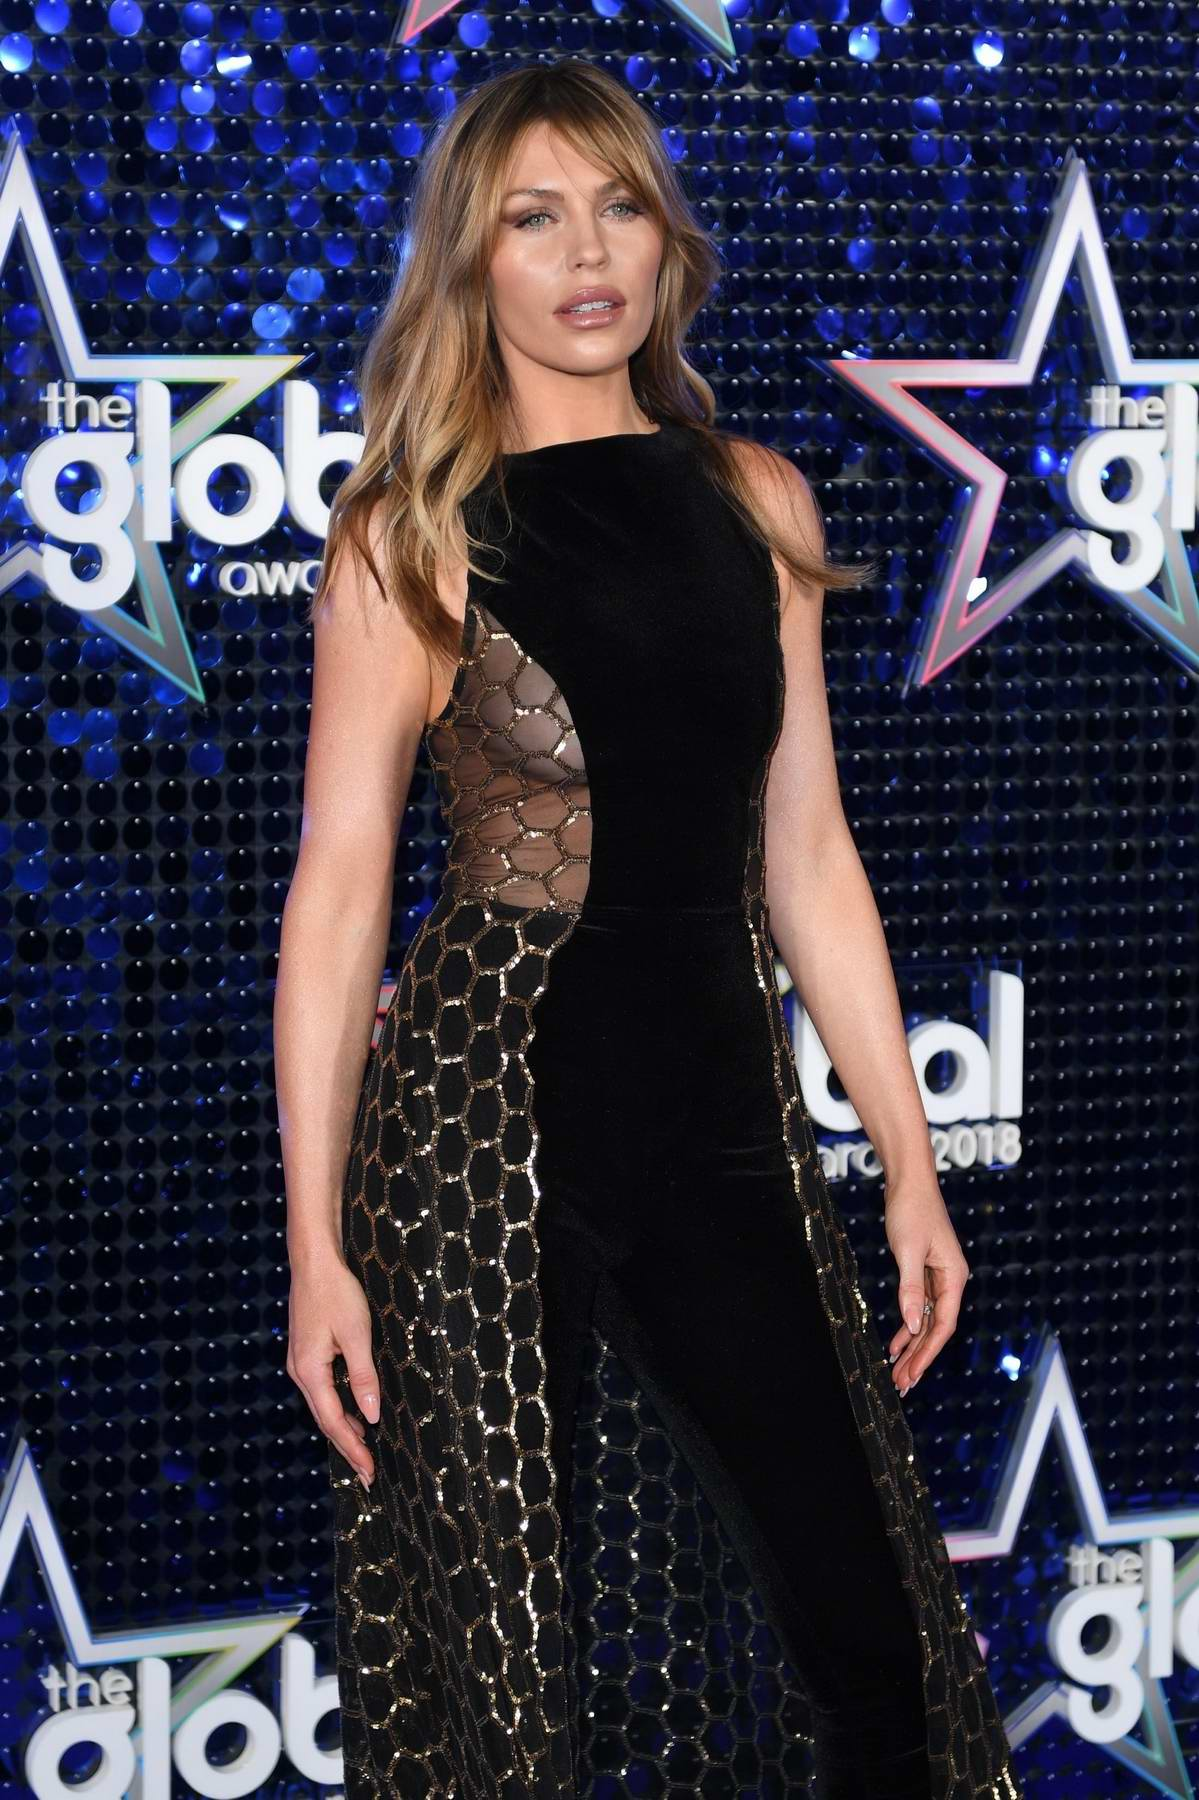 Abbey Clancy attends The Global Awards 2018 in London